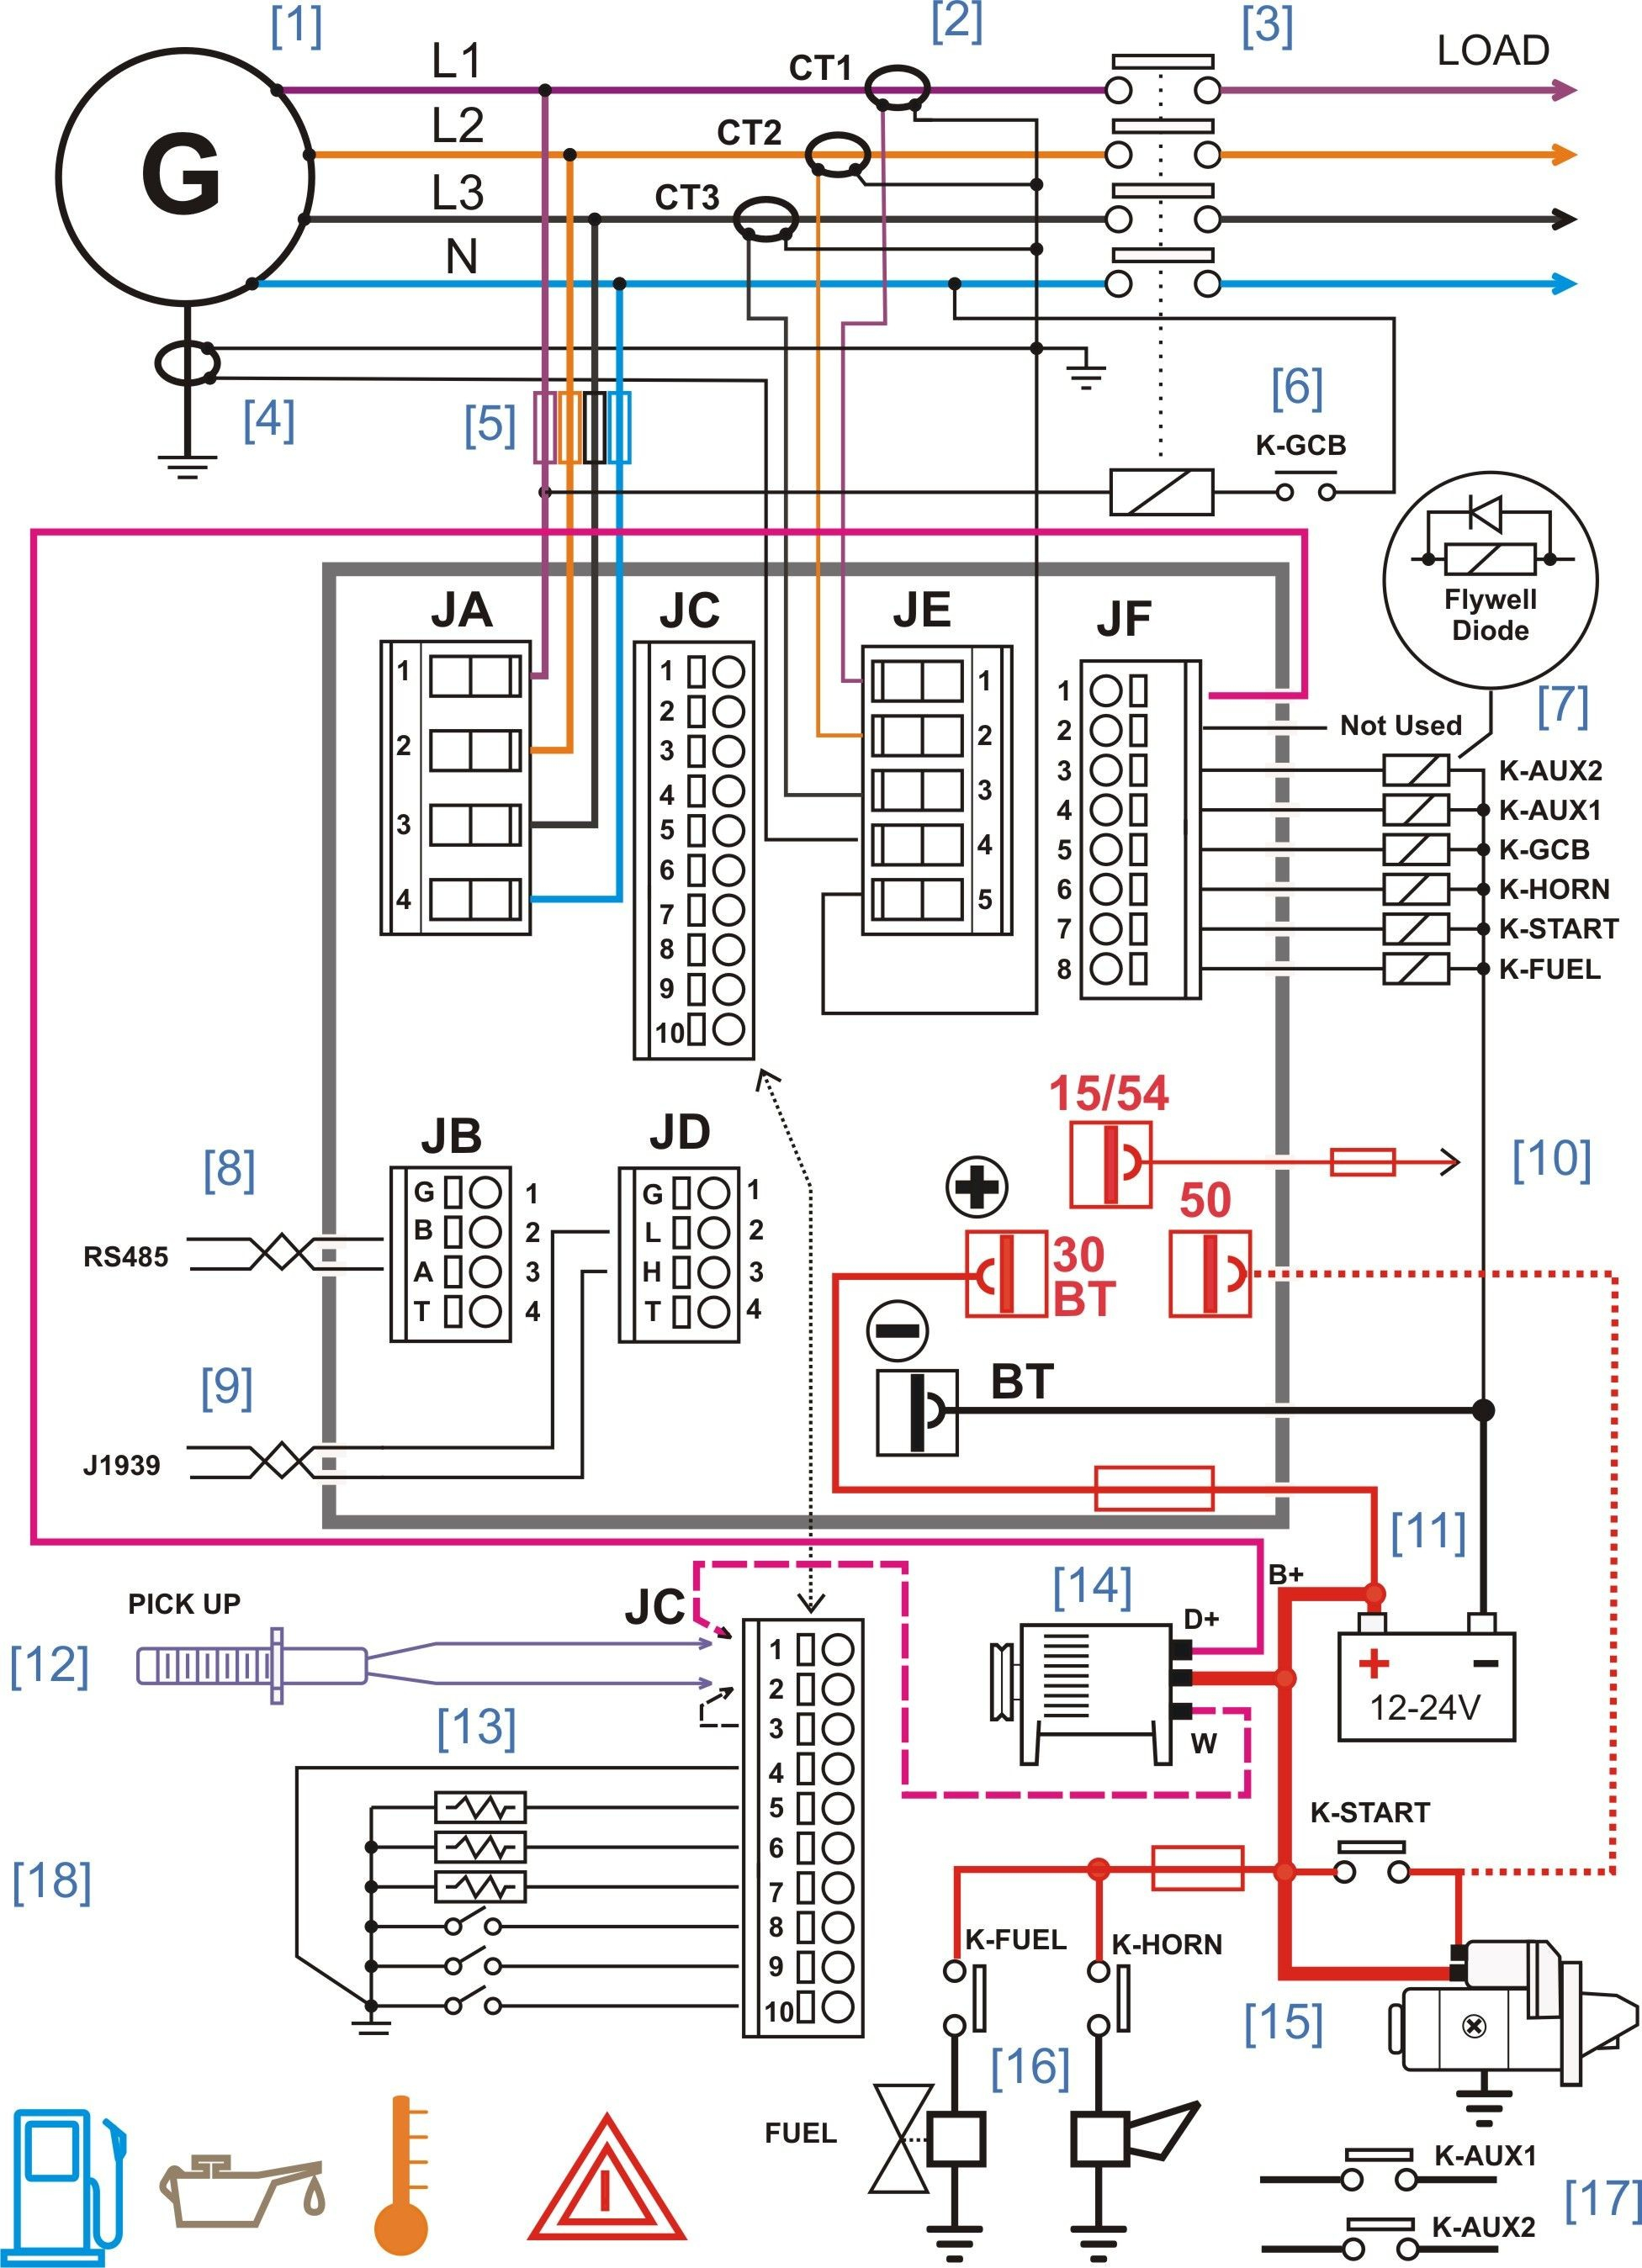 Generator Control Panel Wiring Diagram Pdf Gallery